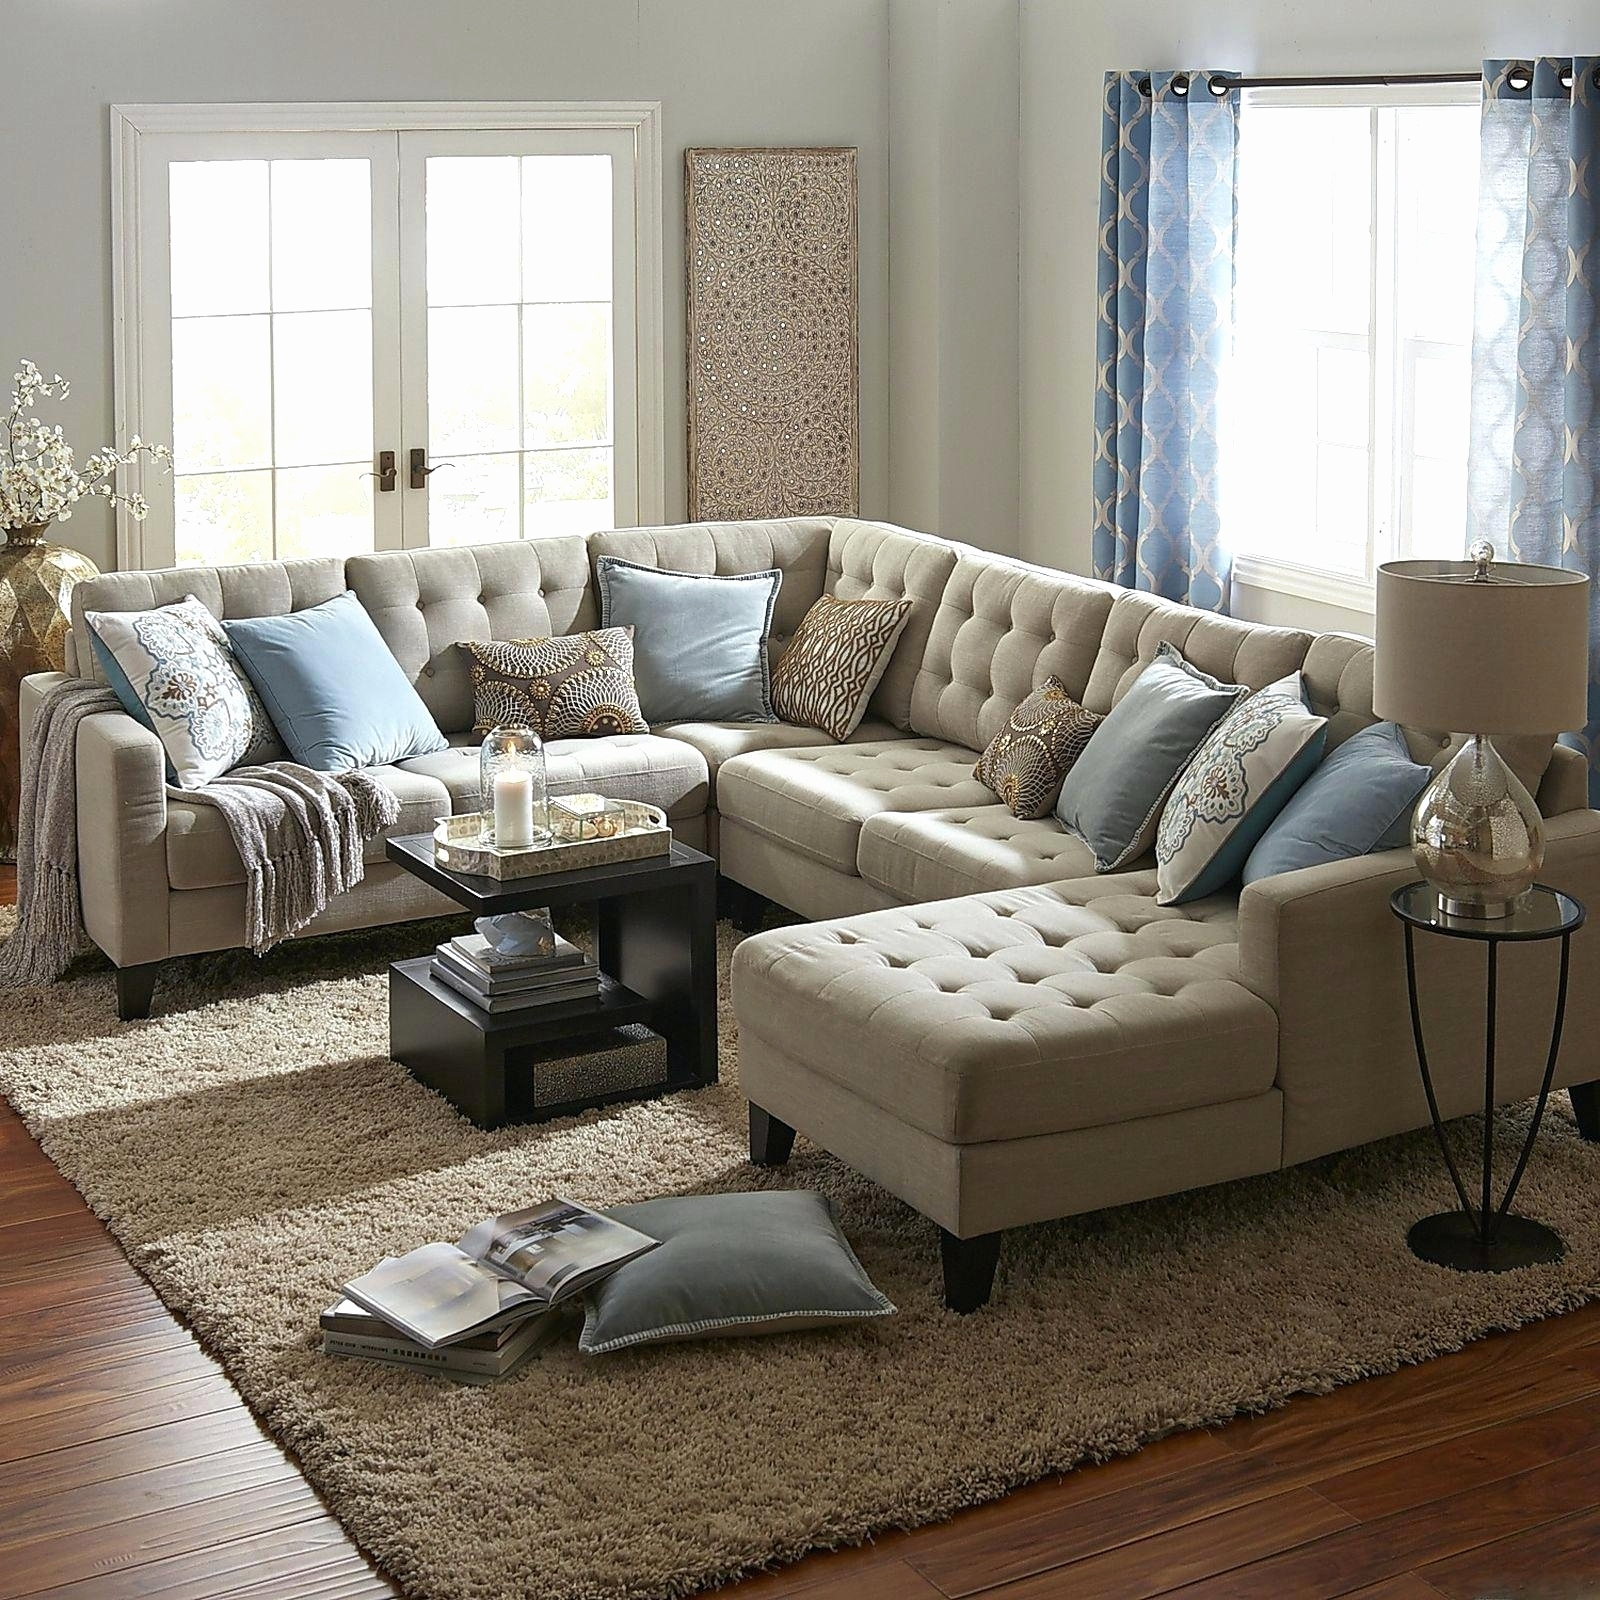 Furniture For Sale Montreal 10 Collection Of Kijiji Montreal Sectional Sofas Sofa Ideas